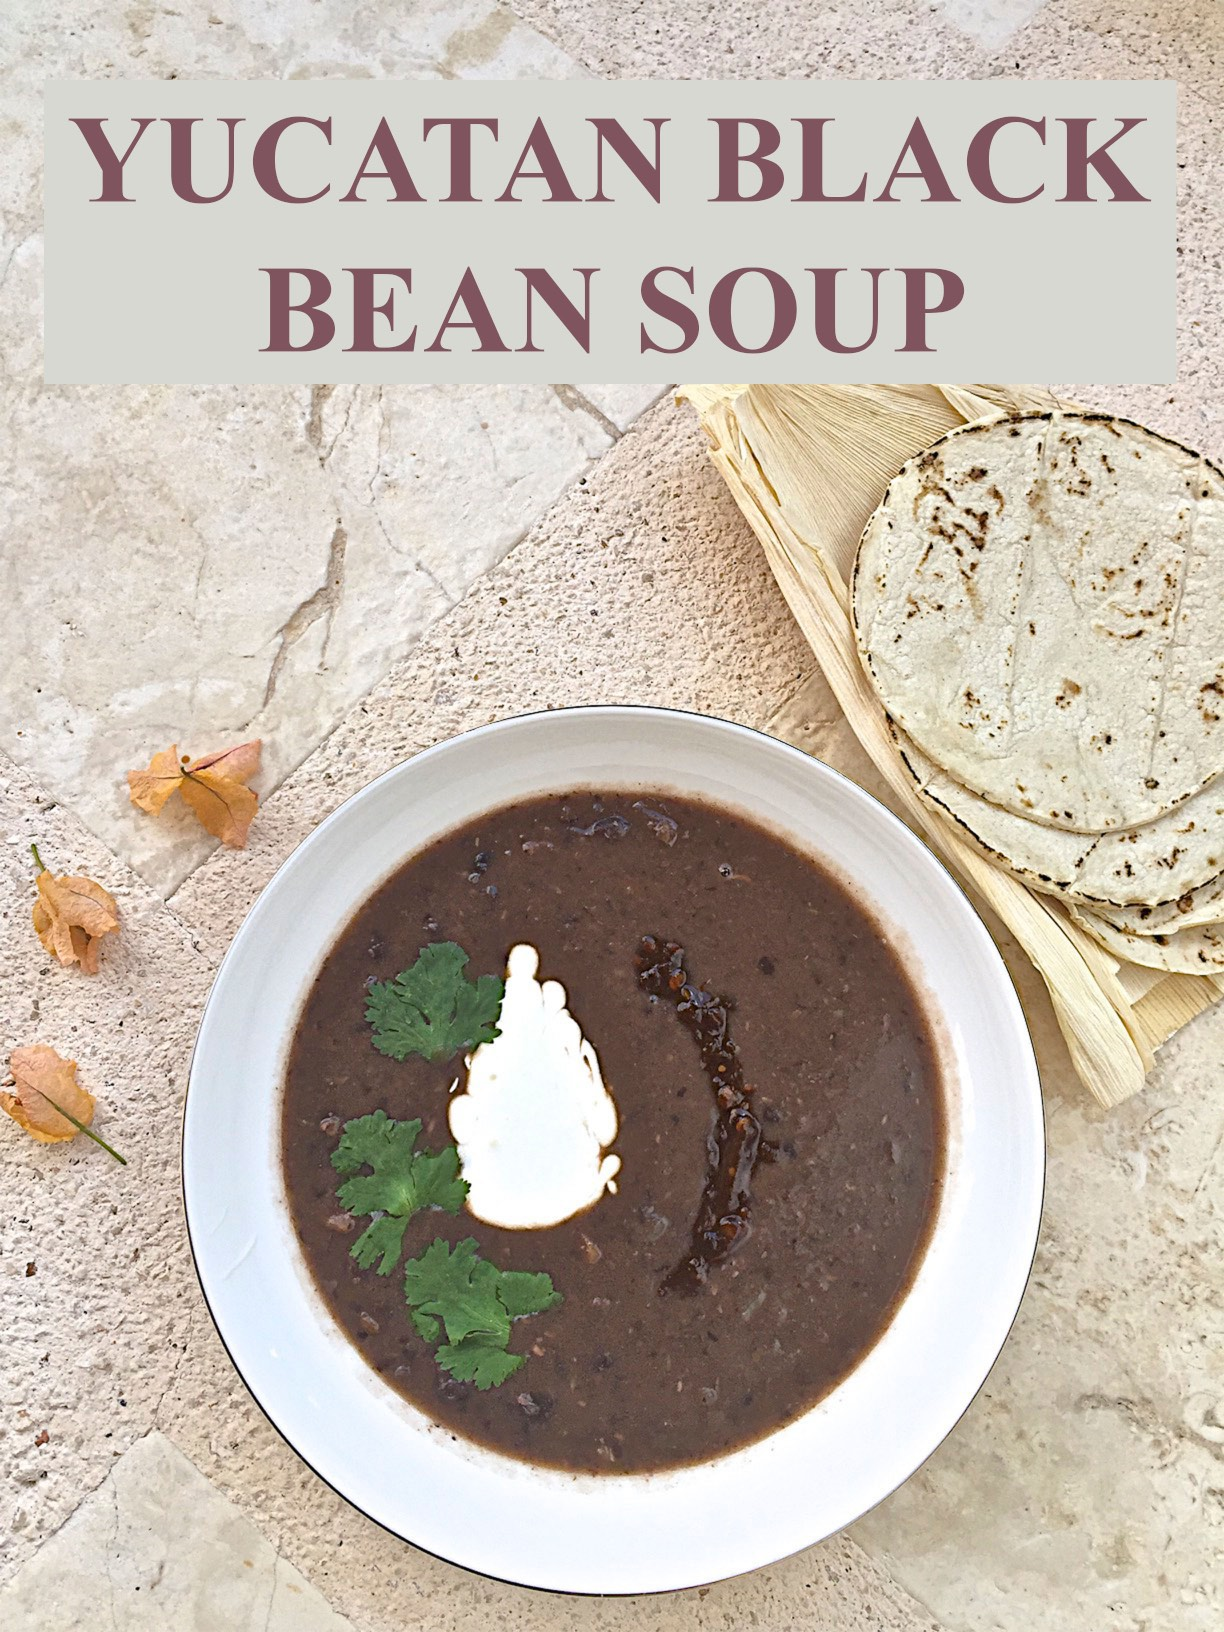 Yucatan black bean soup